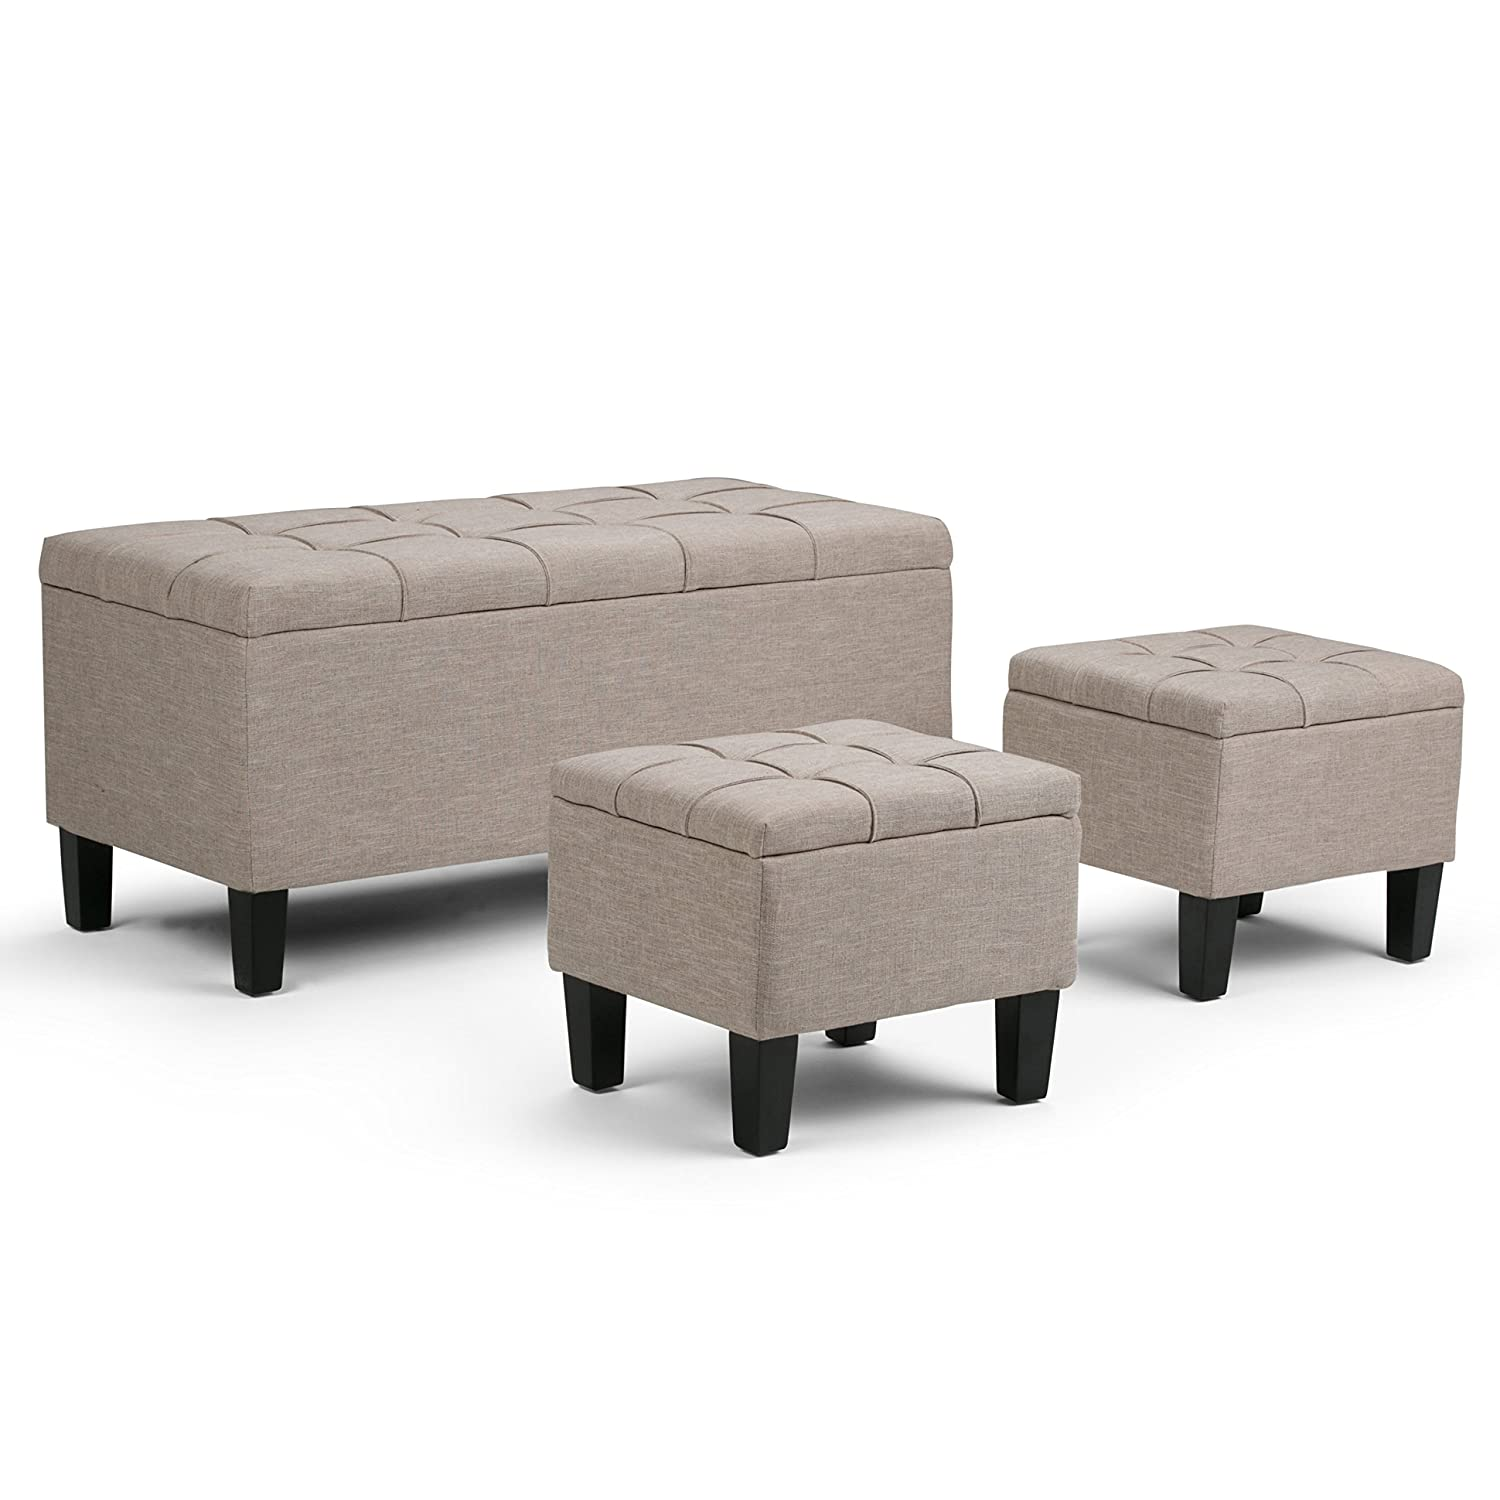 Simpli Home AXCOT-280 Bowie 60 inch Wide ModernOttoman Bench in Distressed Charcoal Faux Air Leather